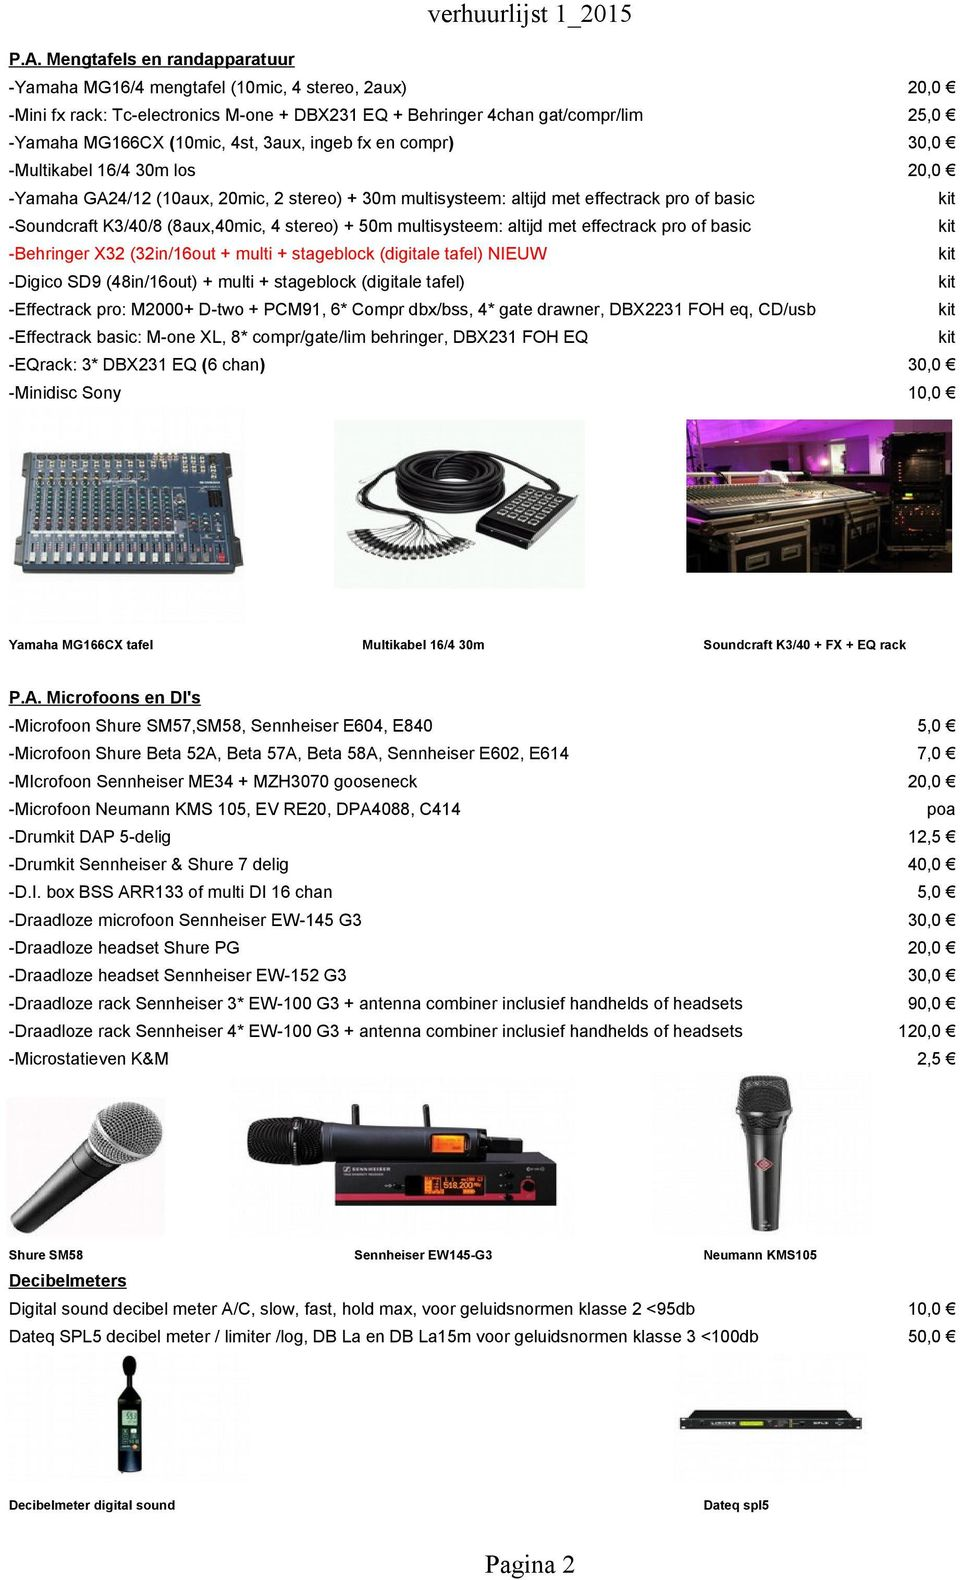 stereo) + 50m multisysteem: altijd met effectrack pro of basic -Behringer X32 (32in/16out + multi + stageblock (digitale tafel) NIEUW -Digico SD9 (48in/16out) + multi + stageblock (digitale tafel)